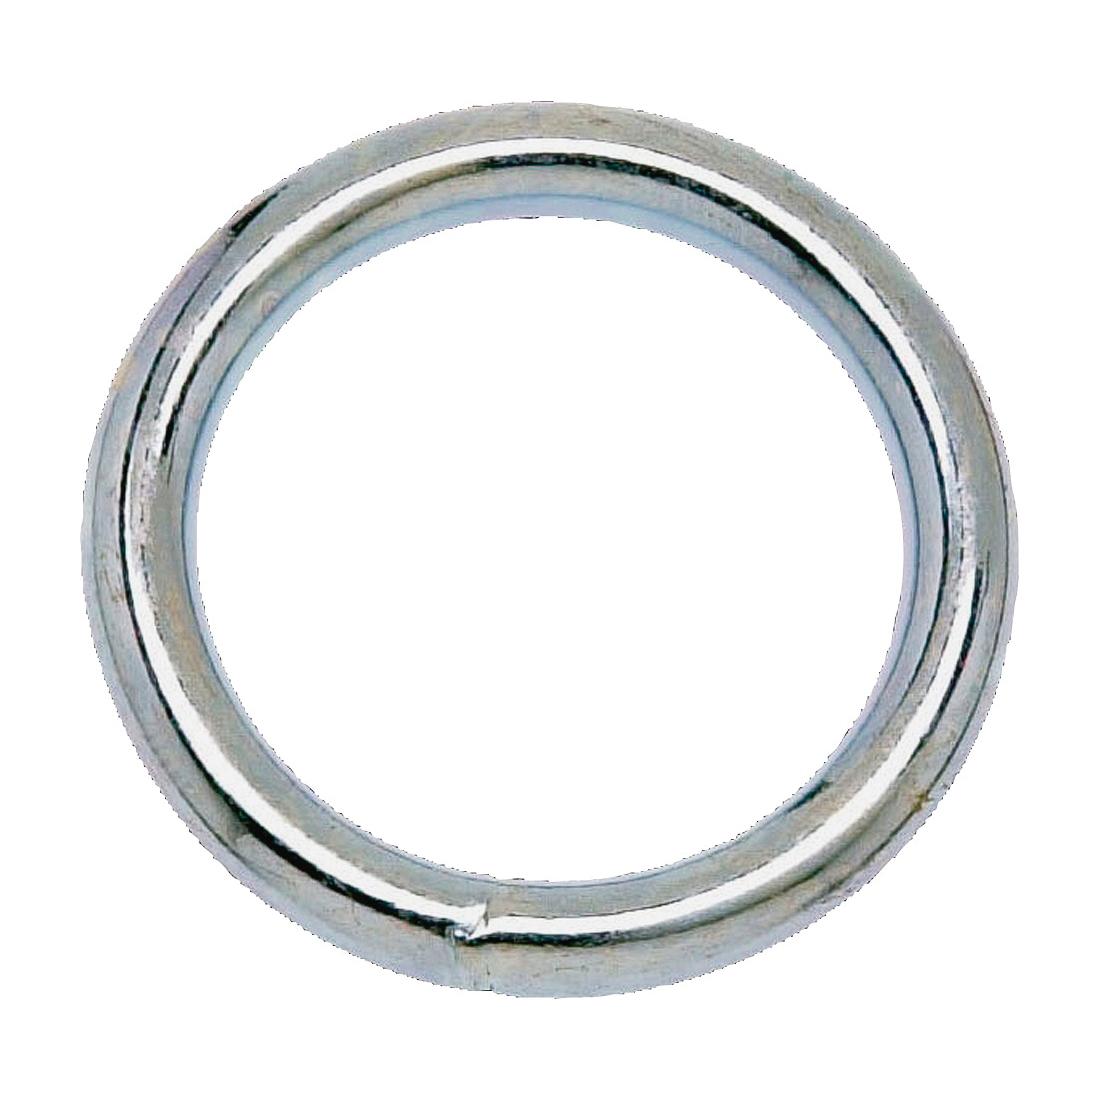 Picture of Campbell T7665012 Welded Ring, 200 lb Working Load, 1 in ID Dia Ring, #7 Chain, Steel, Nickel